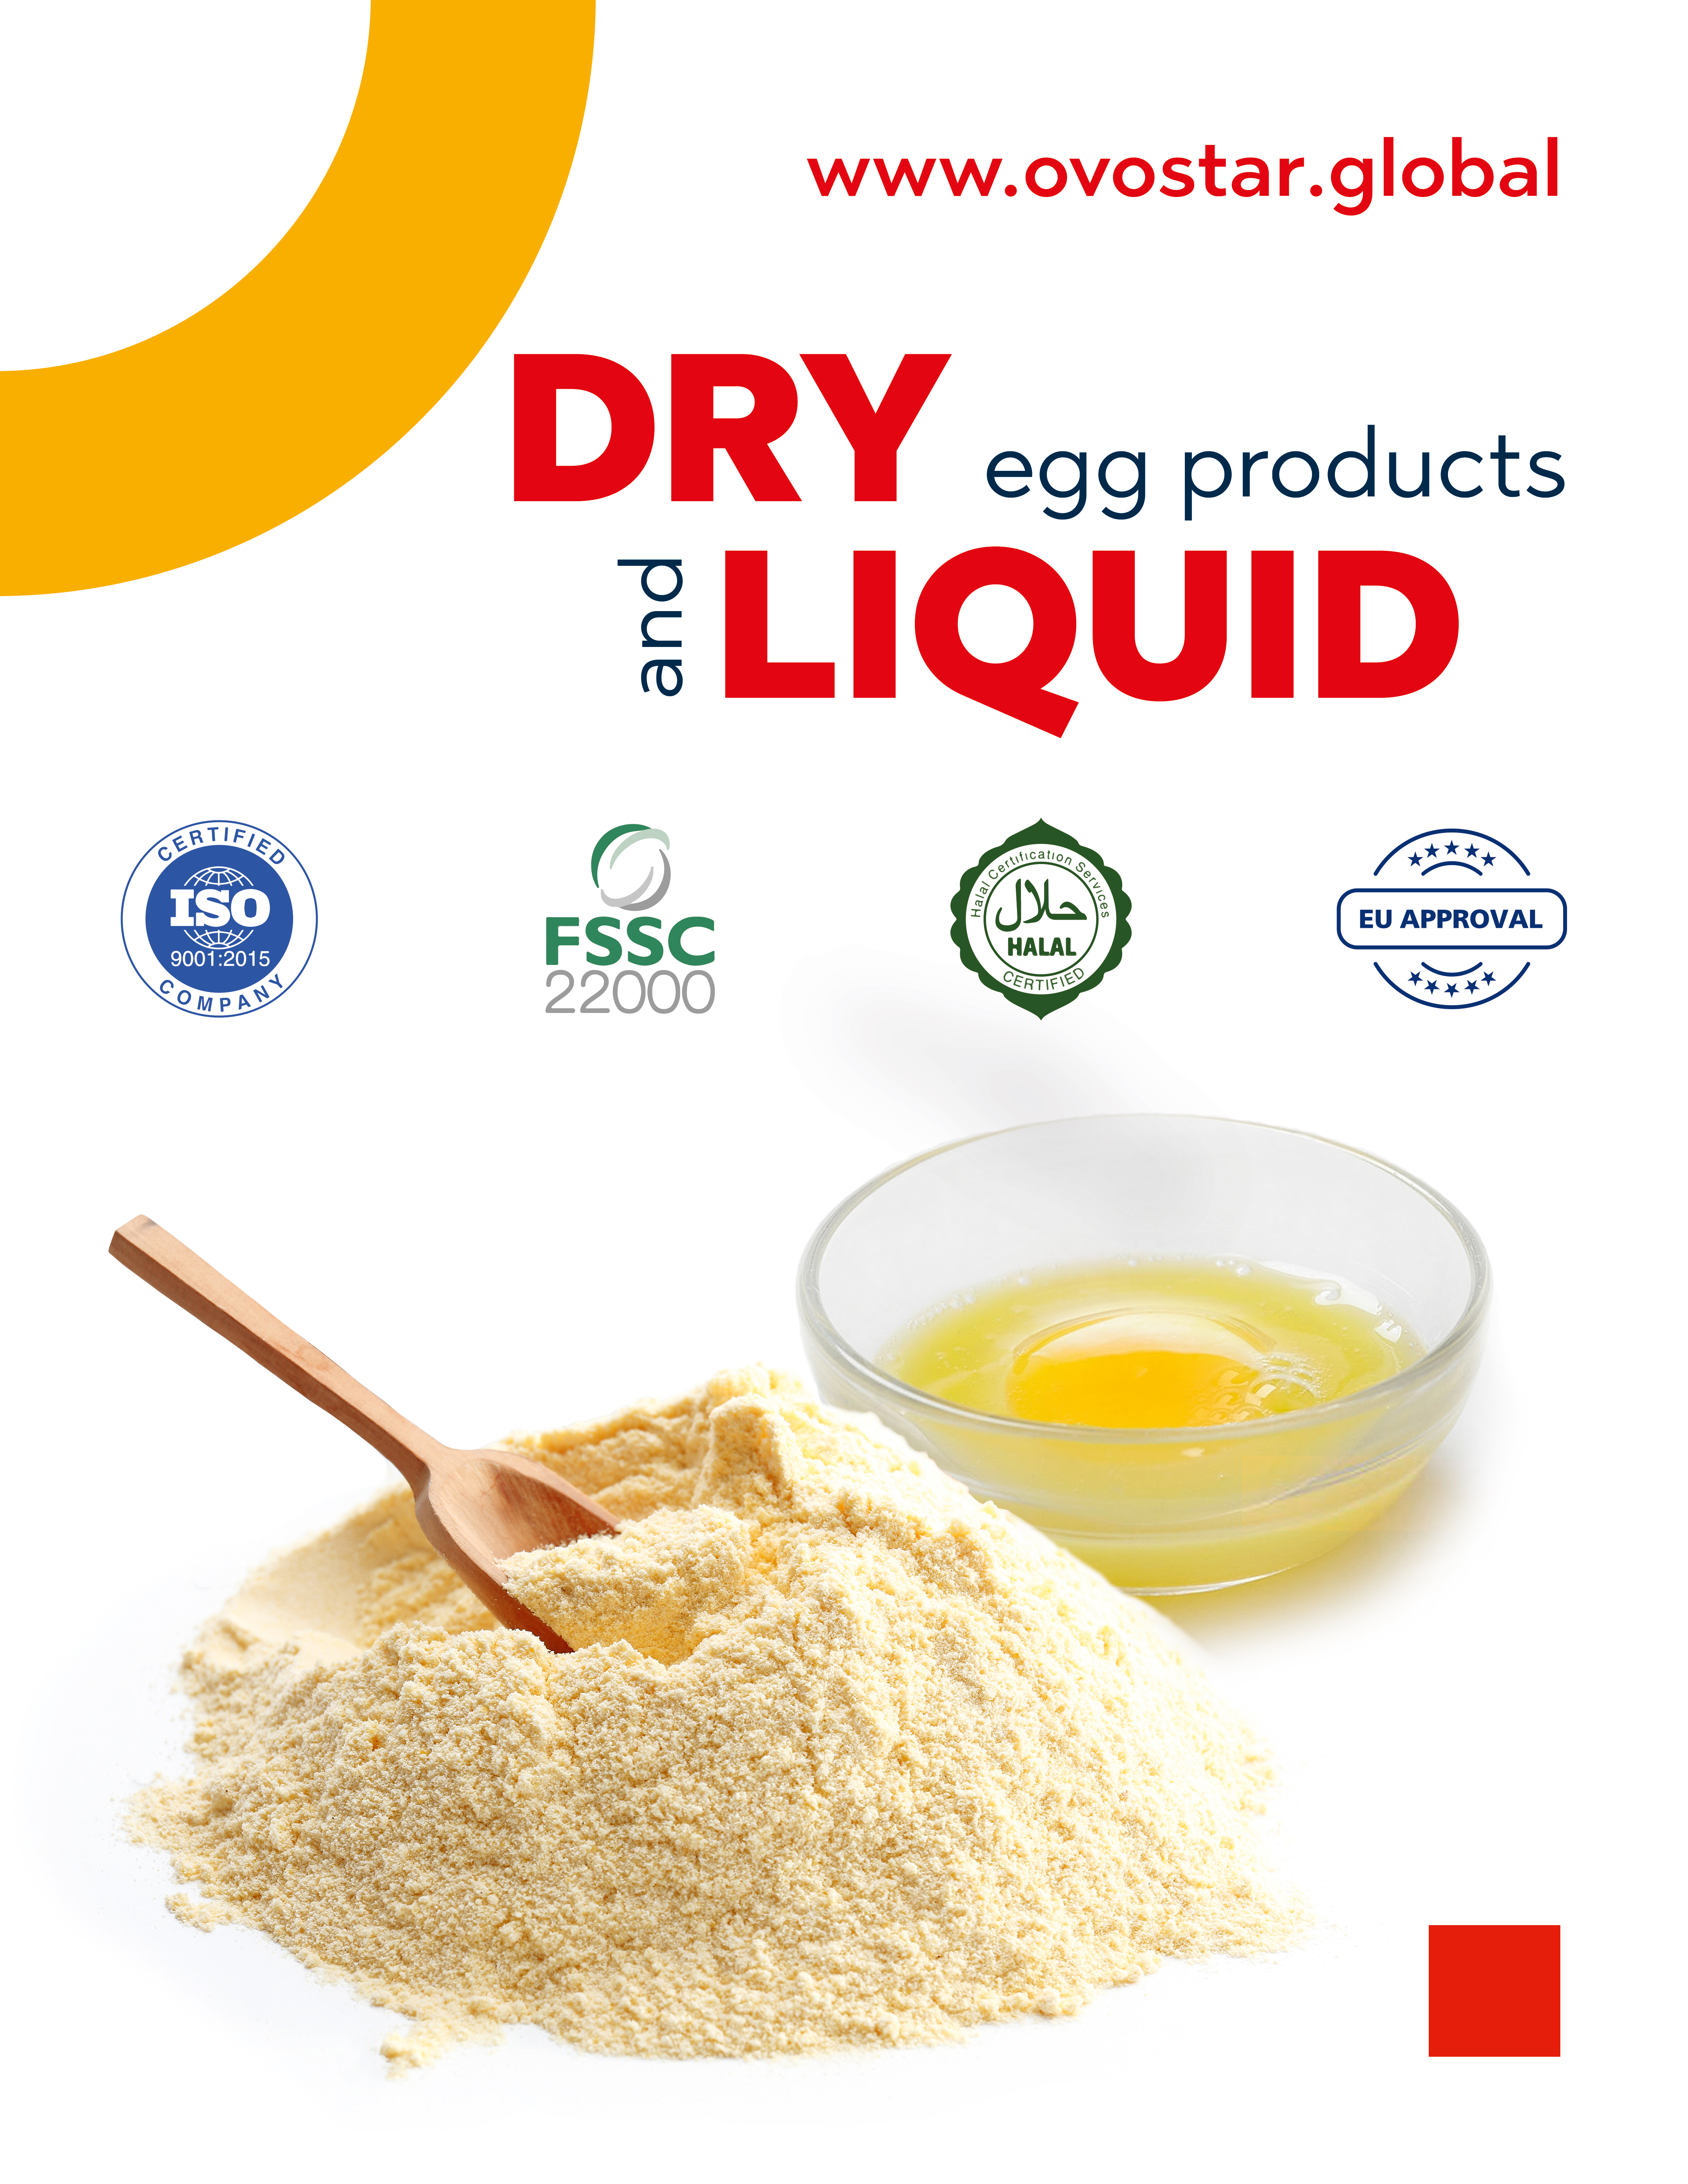 DRY EGG PRODUCTS